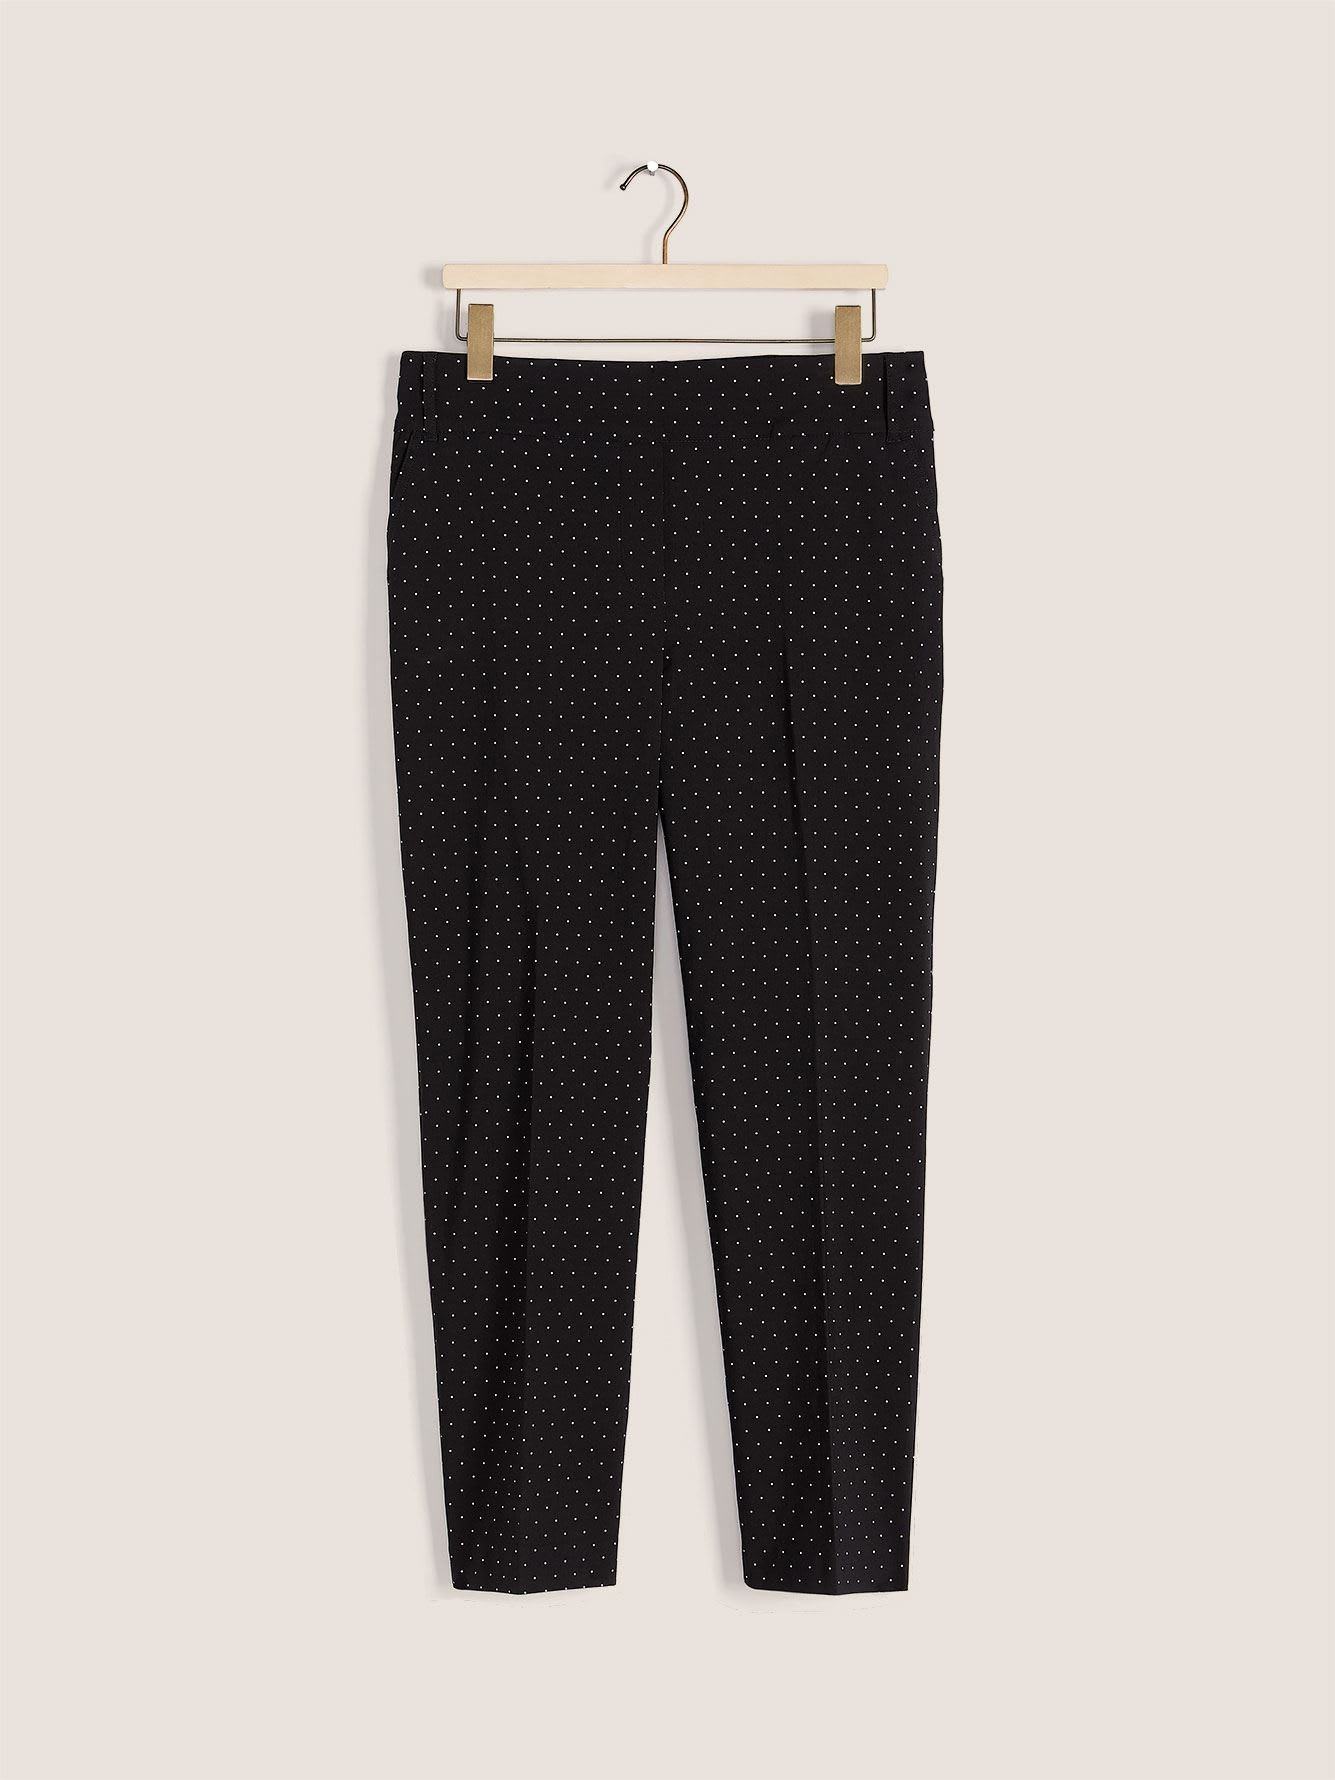 Savvy, Petite, Printed Straight-Leg Pant - In Every Story